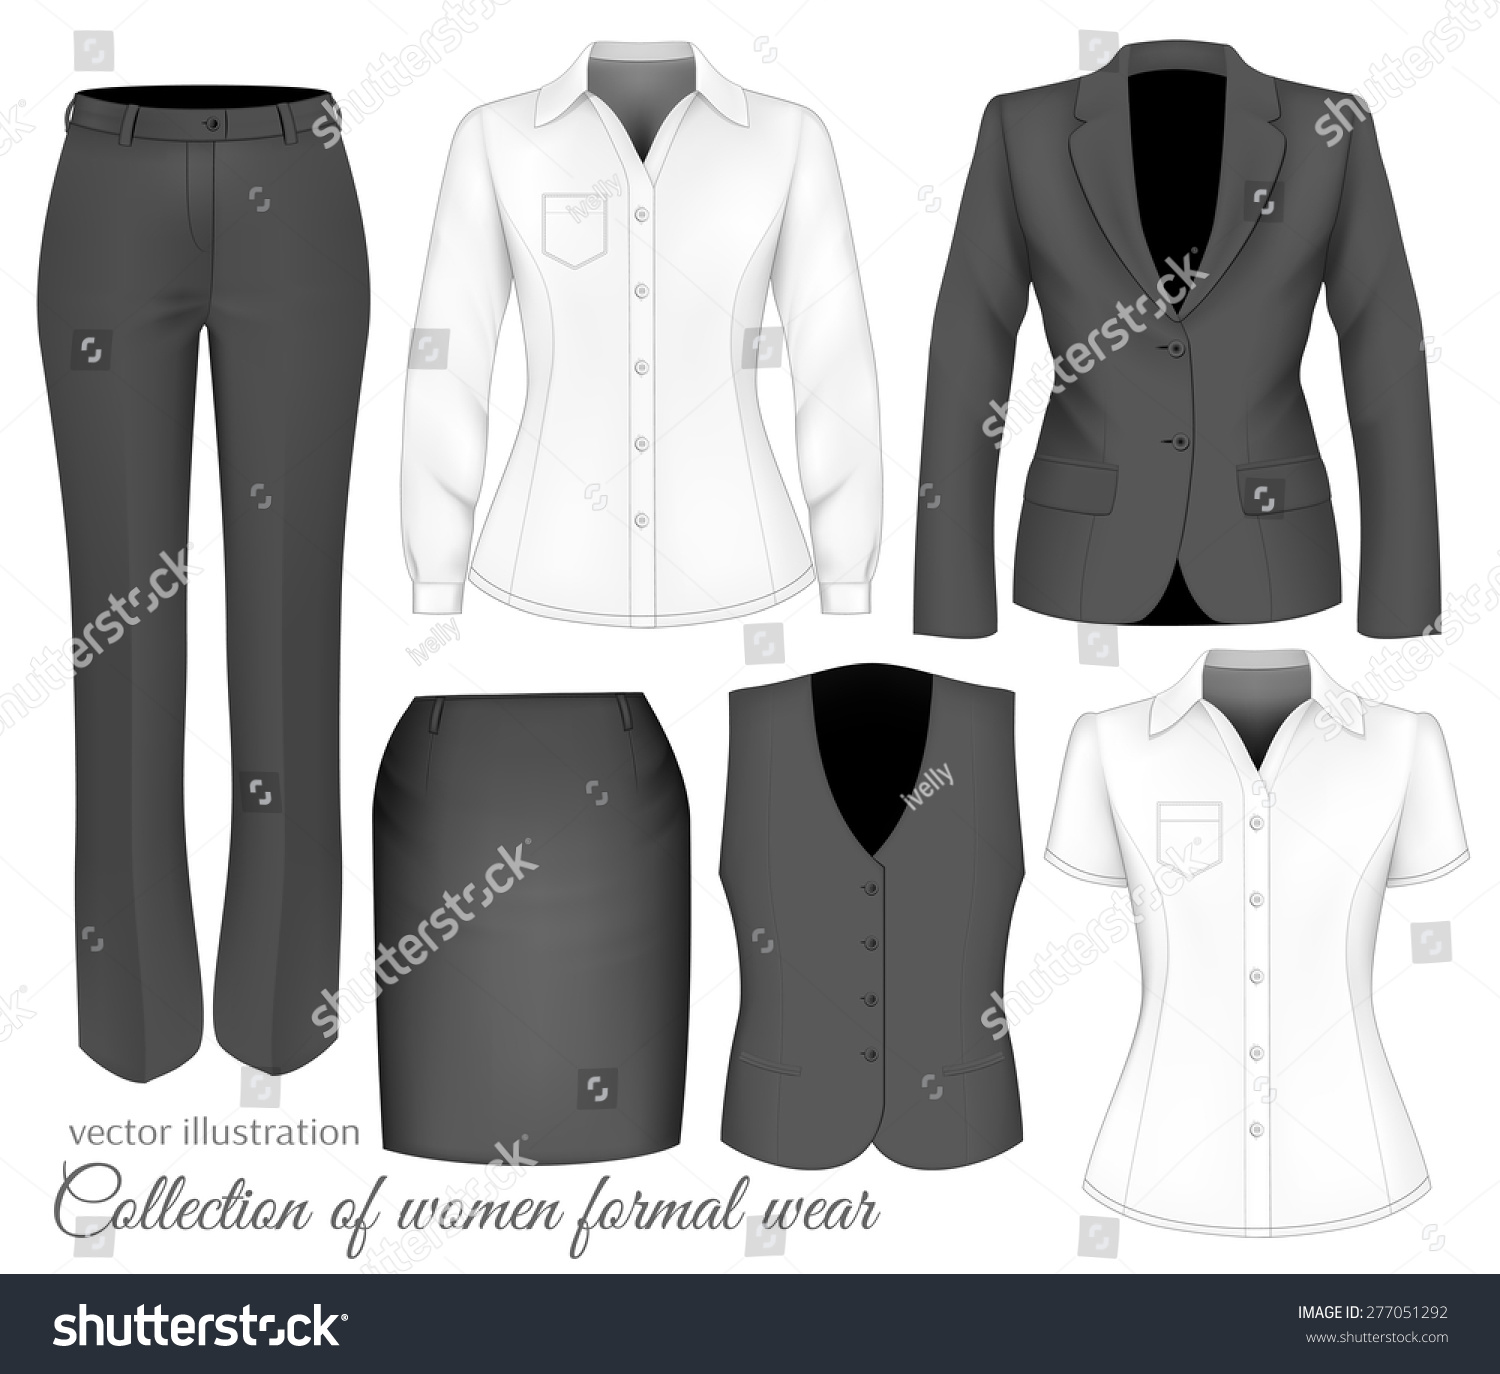 Wear illustrations and clipart (95,676) - Can Stock Photo